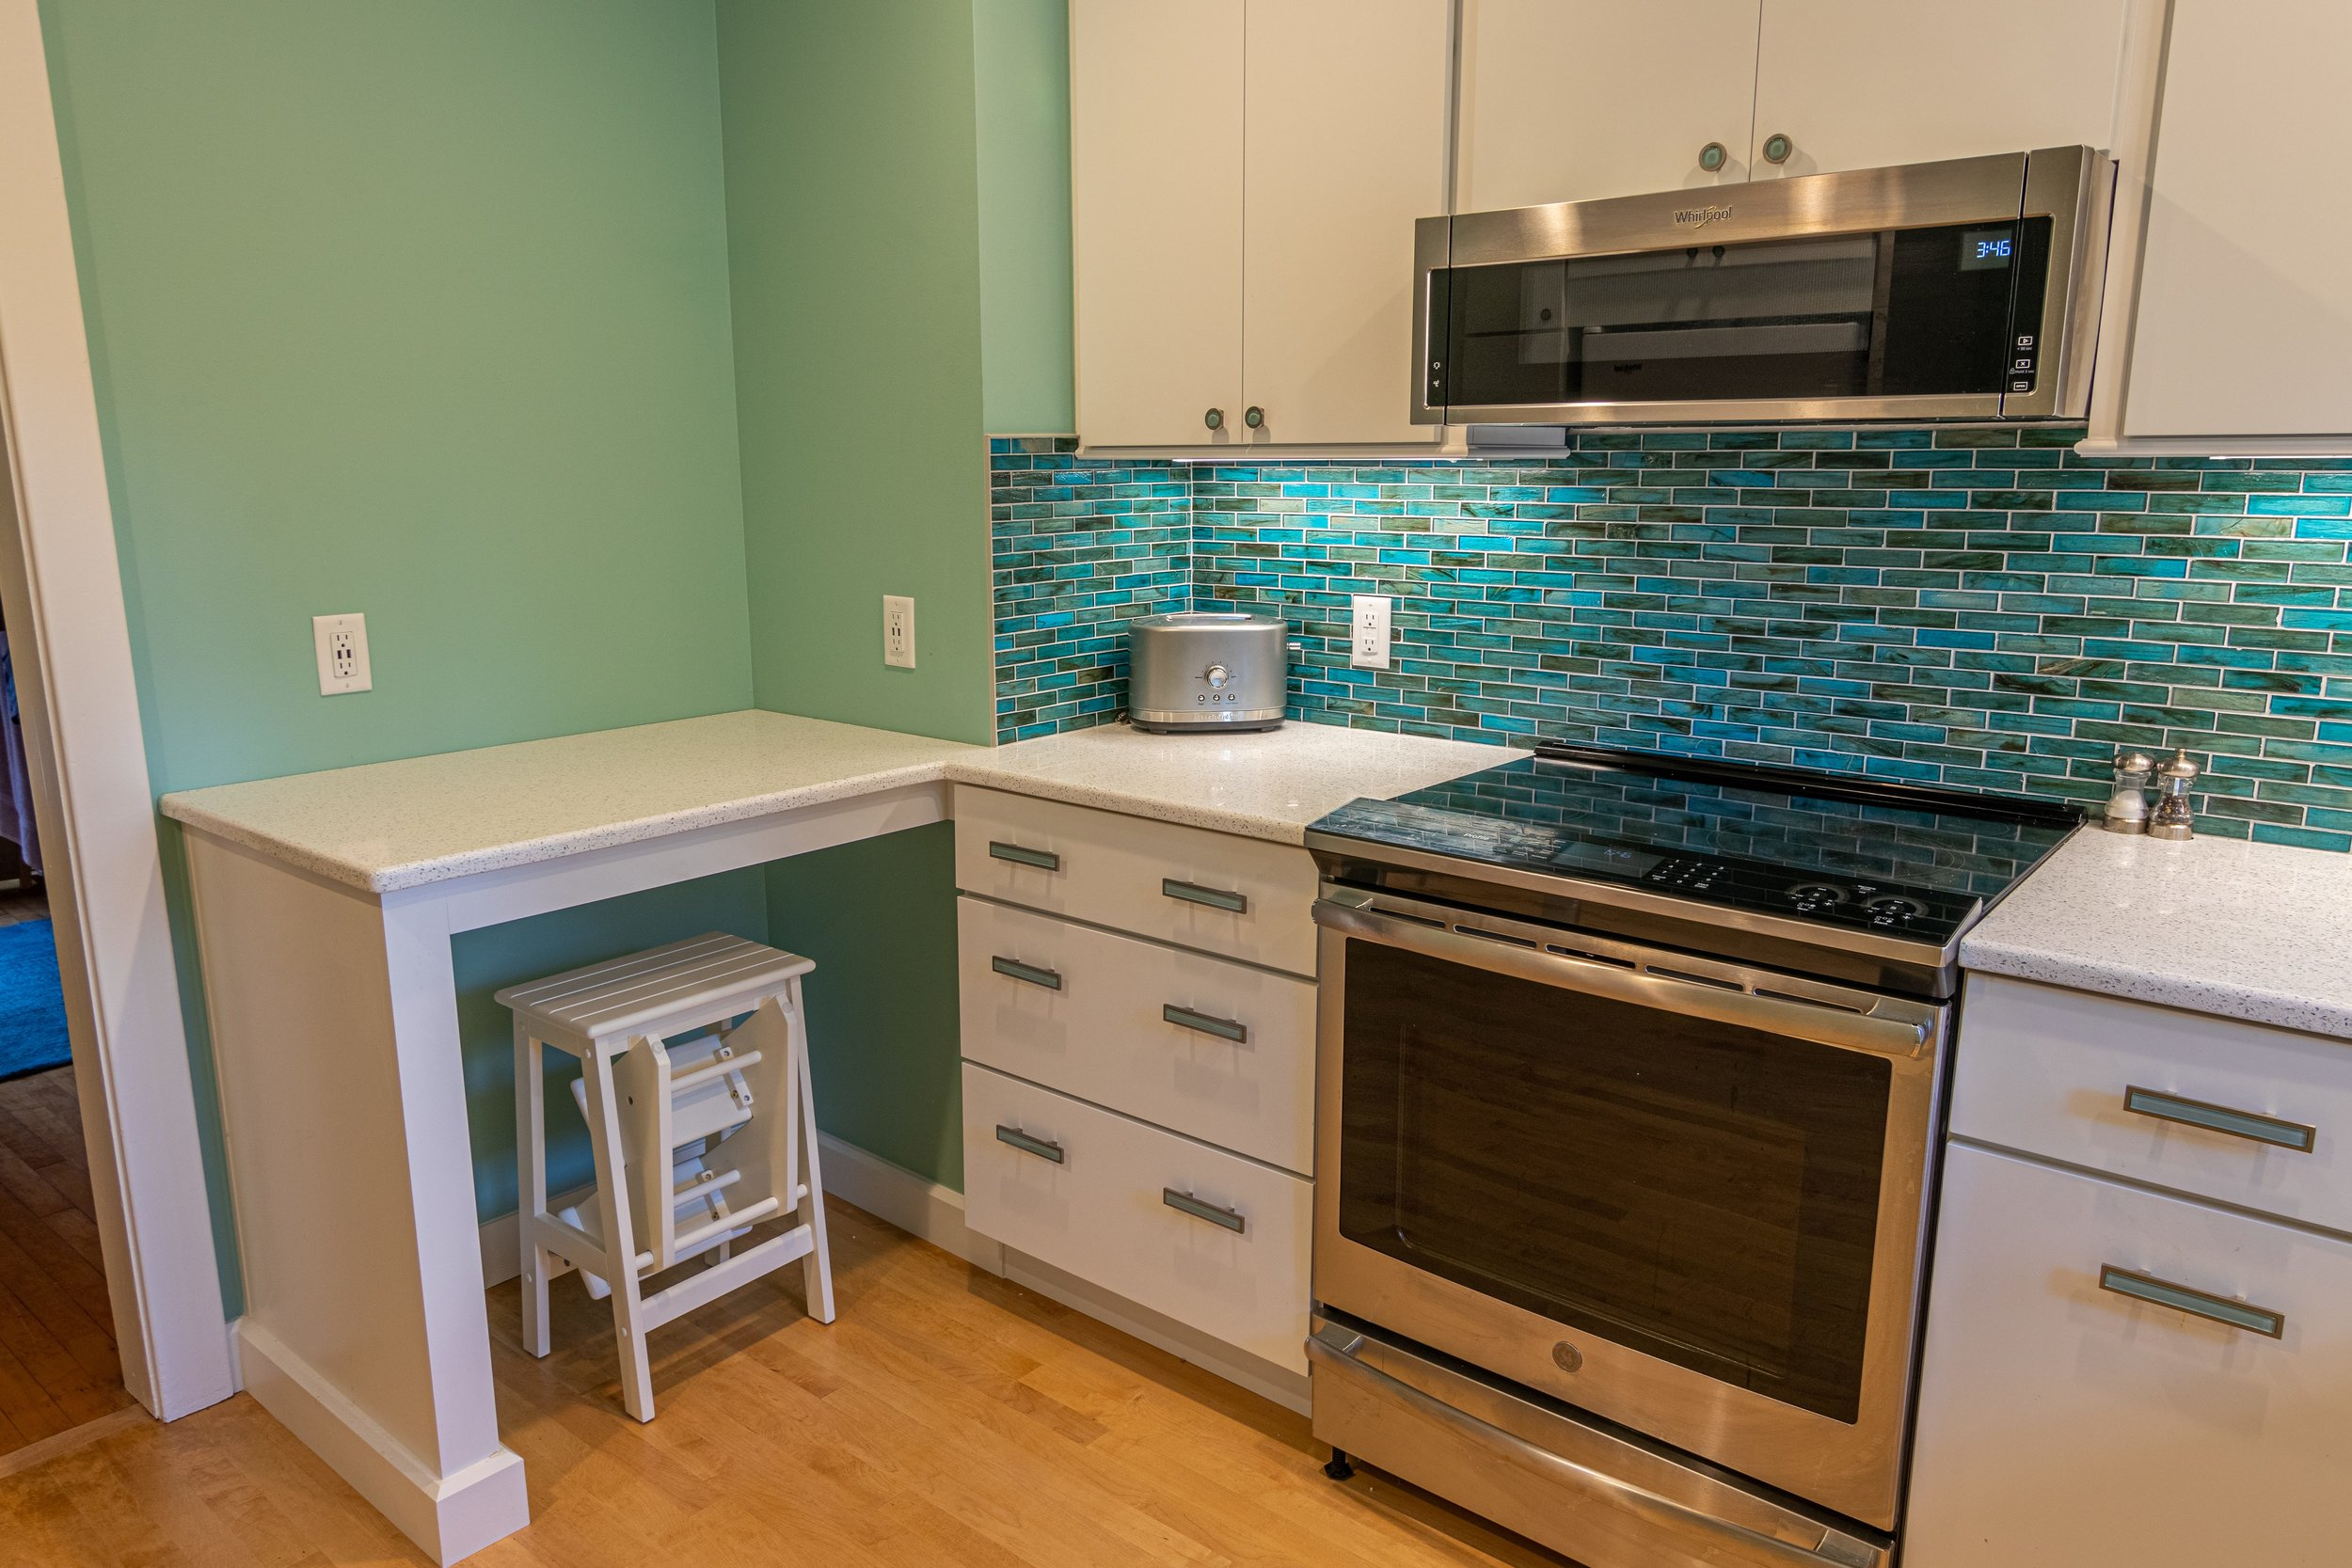 kitchen-remodel-renovate-madison-wi-5.jpg